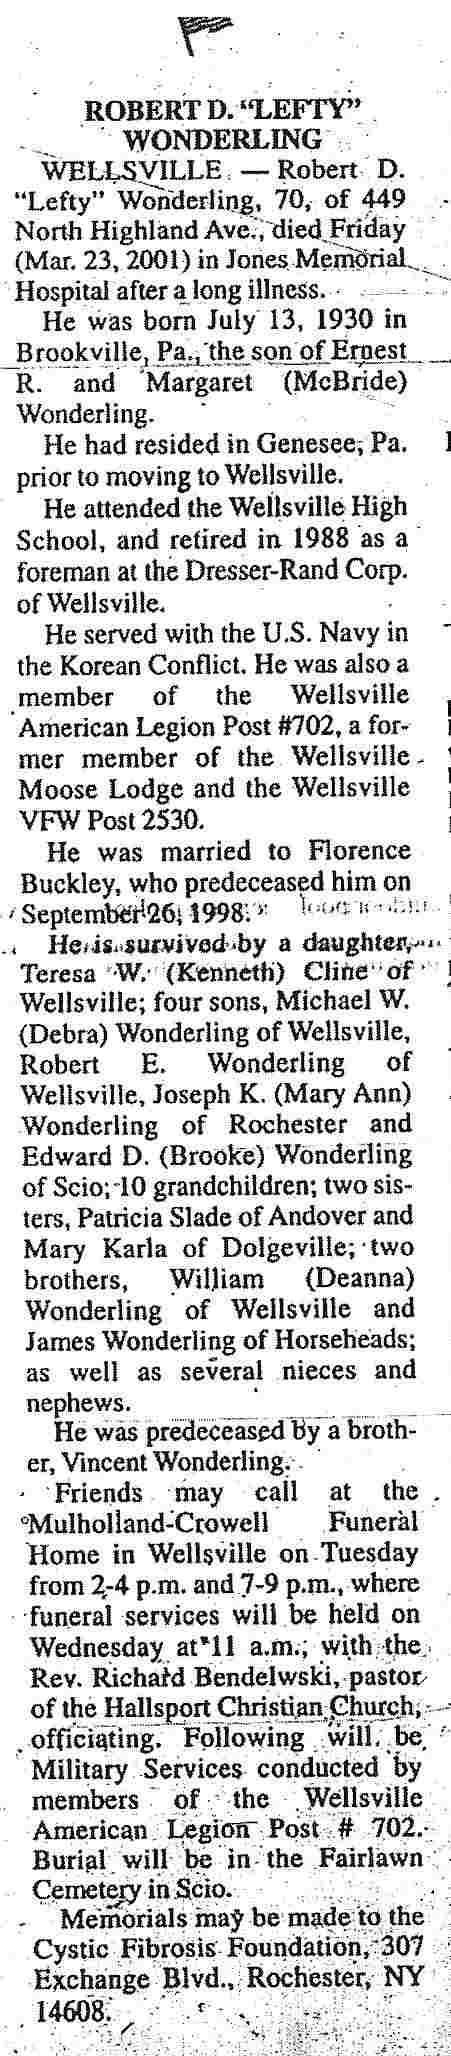 LEFTY WONDERLING OBIT